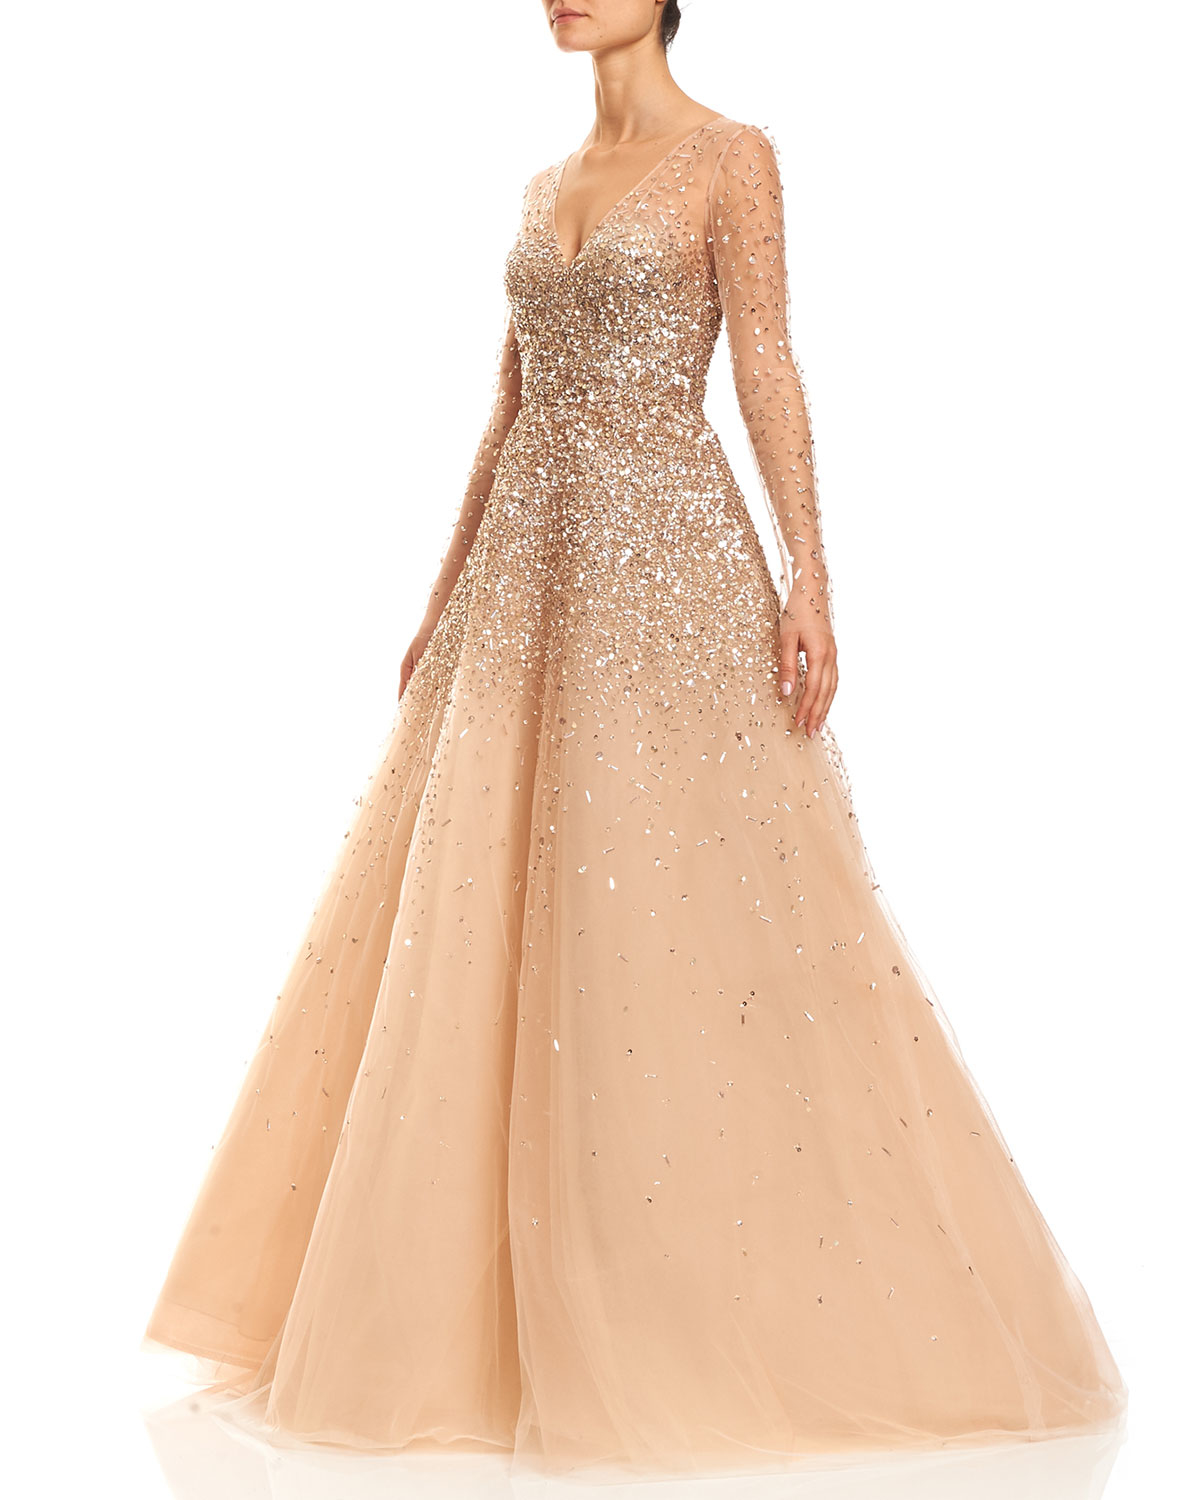 Lyst Carolina Herrera Sequined Illusion Tulle Ball Gown In Natural